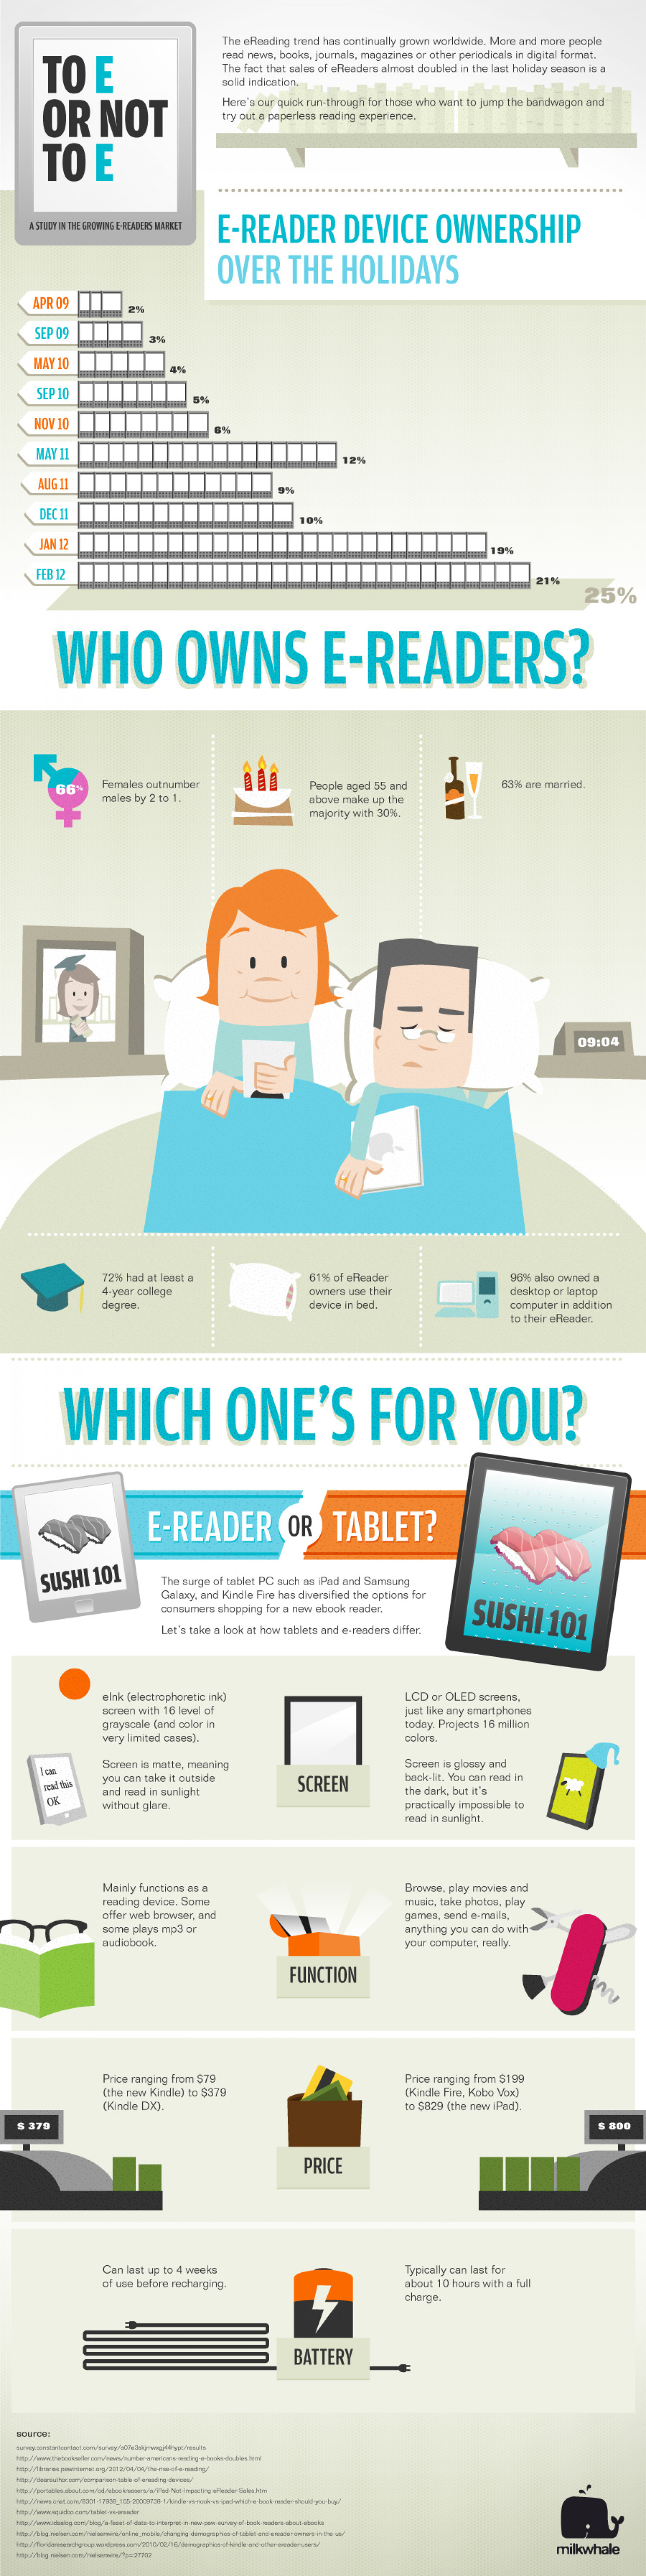 To E or Not to E: A Study in the Growing E-Readers Market Infographic